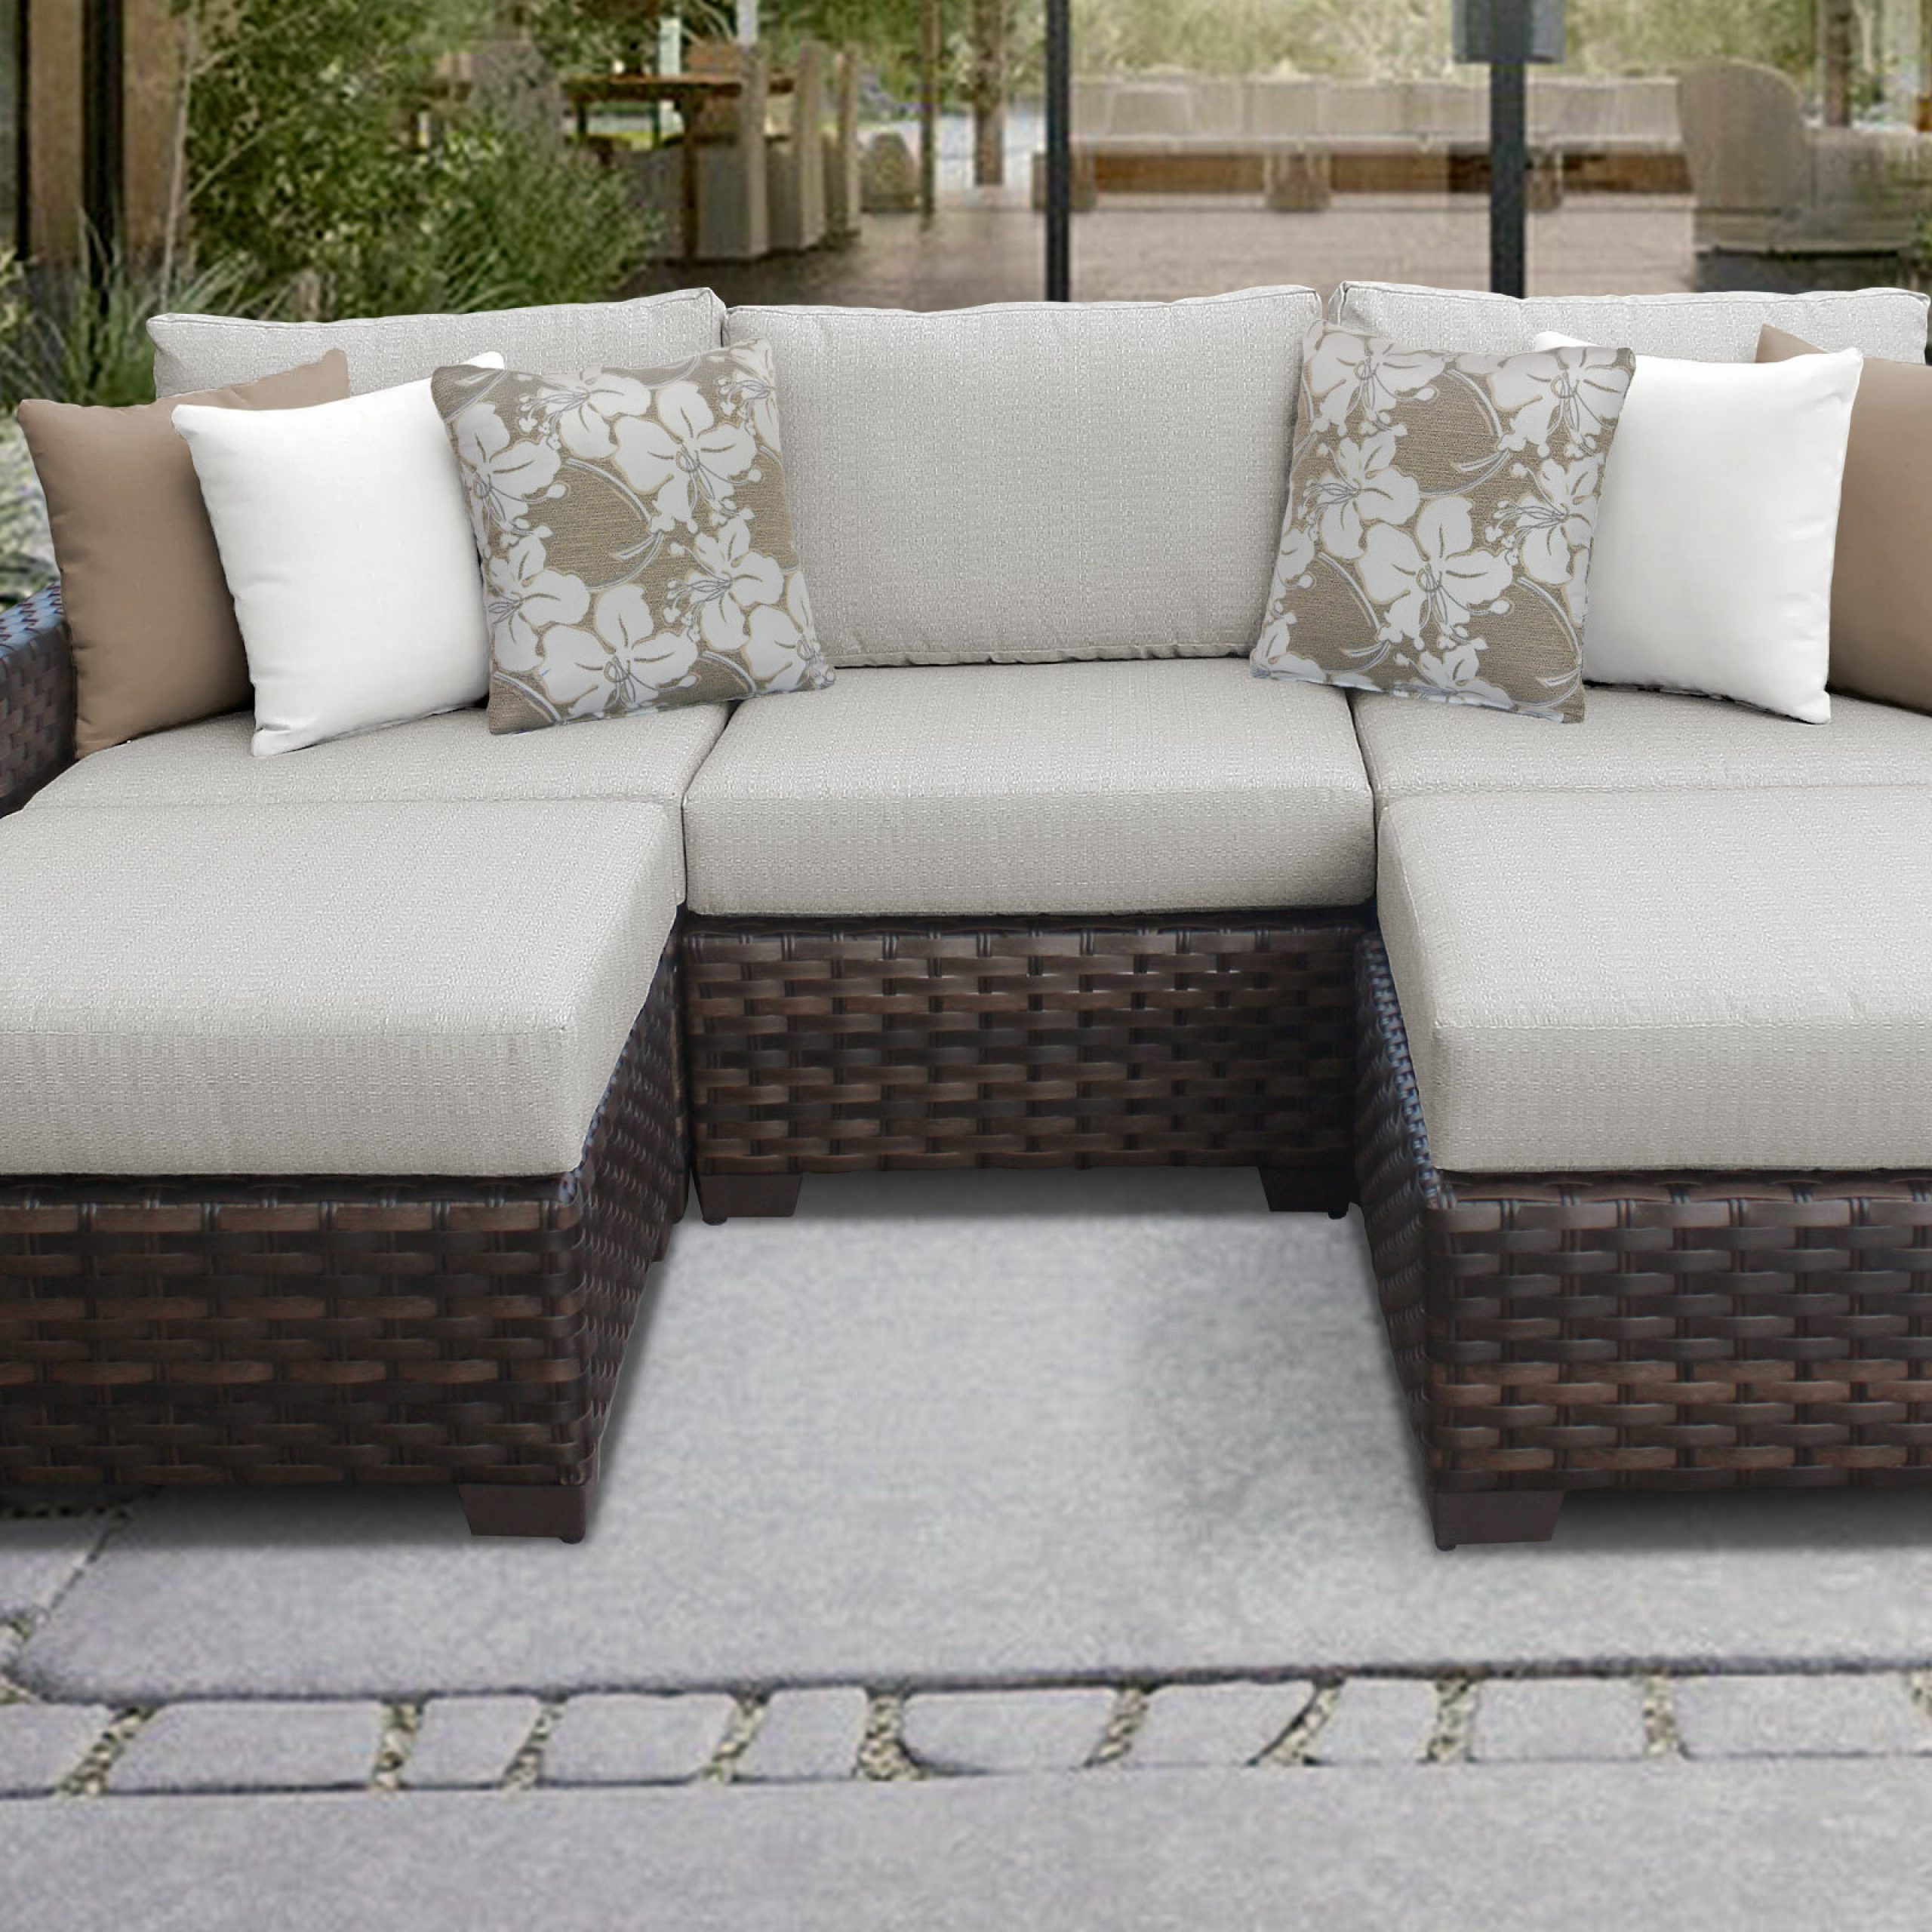 Most Up To Date Ostrowski Patio Sectionals With Cushions Within Kathy Ireland Homes & Gardens River Brook Single Ash Wicker Patio Sectional With Cushions (View 19 of 25)